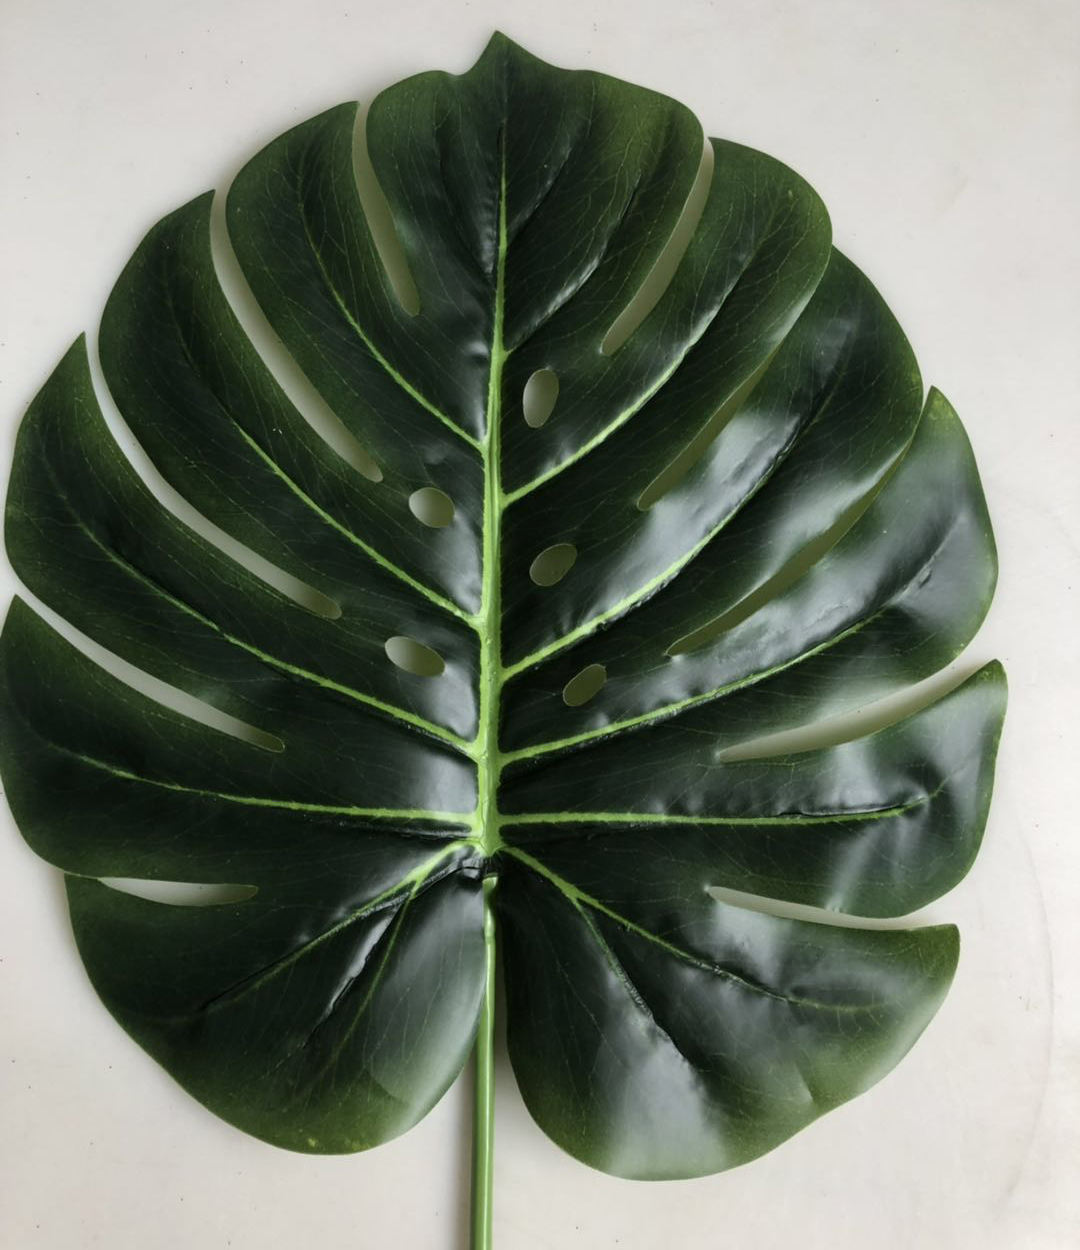 High-End Artificial Monstera Leaf Split Philodendron Stem Living Room Decor 40cm Tall